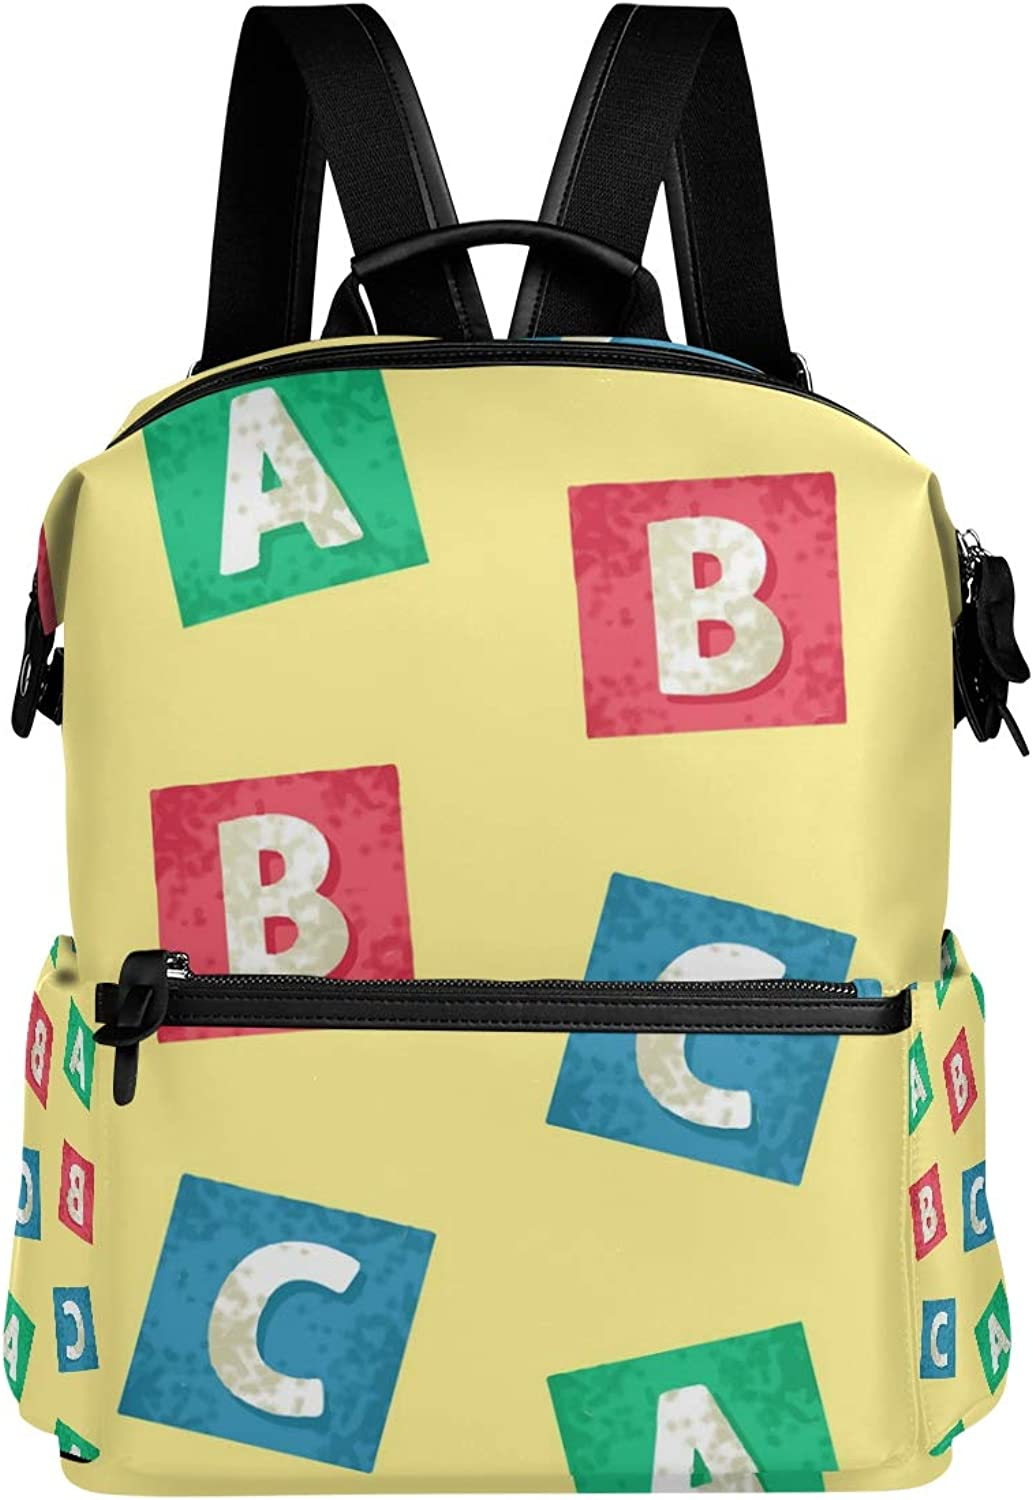 MONTOJ Cute Hand Painted Letters Pattern Leather Travel Bag Campus Backpack